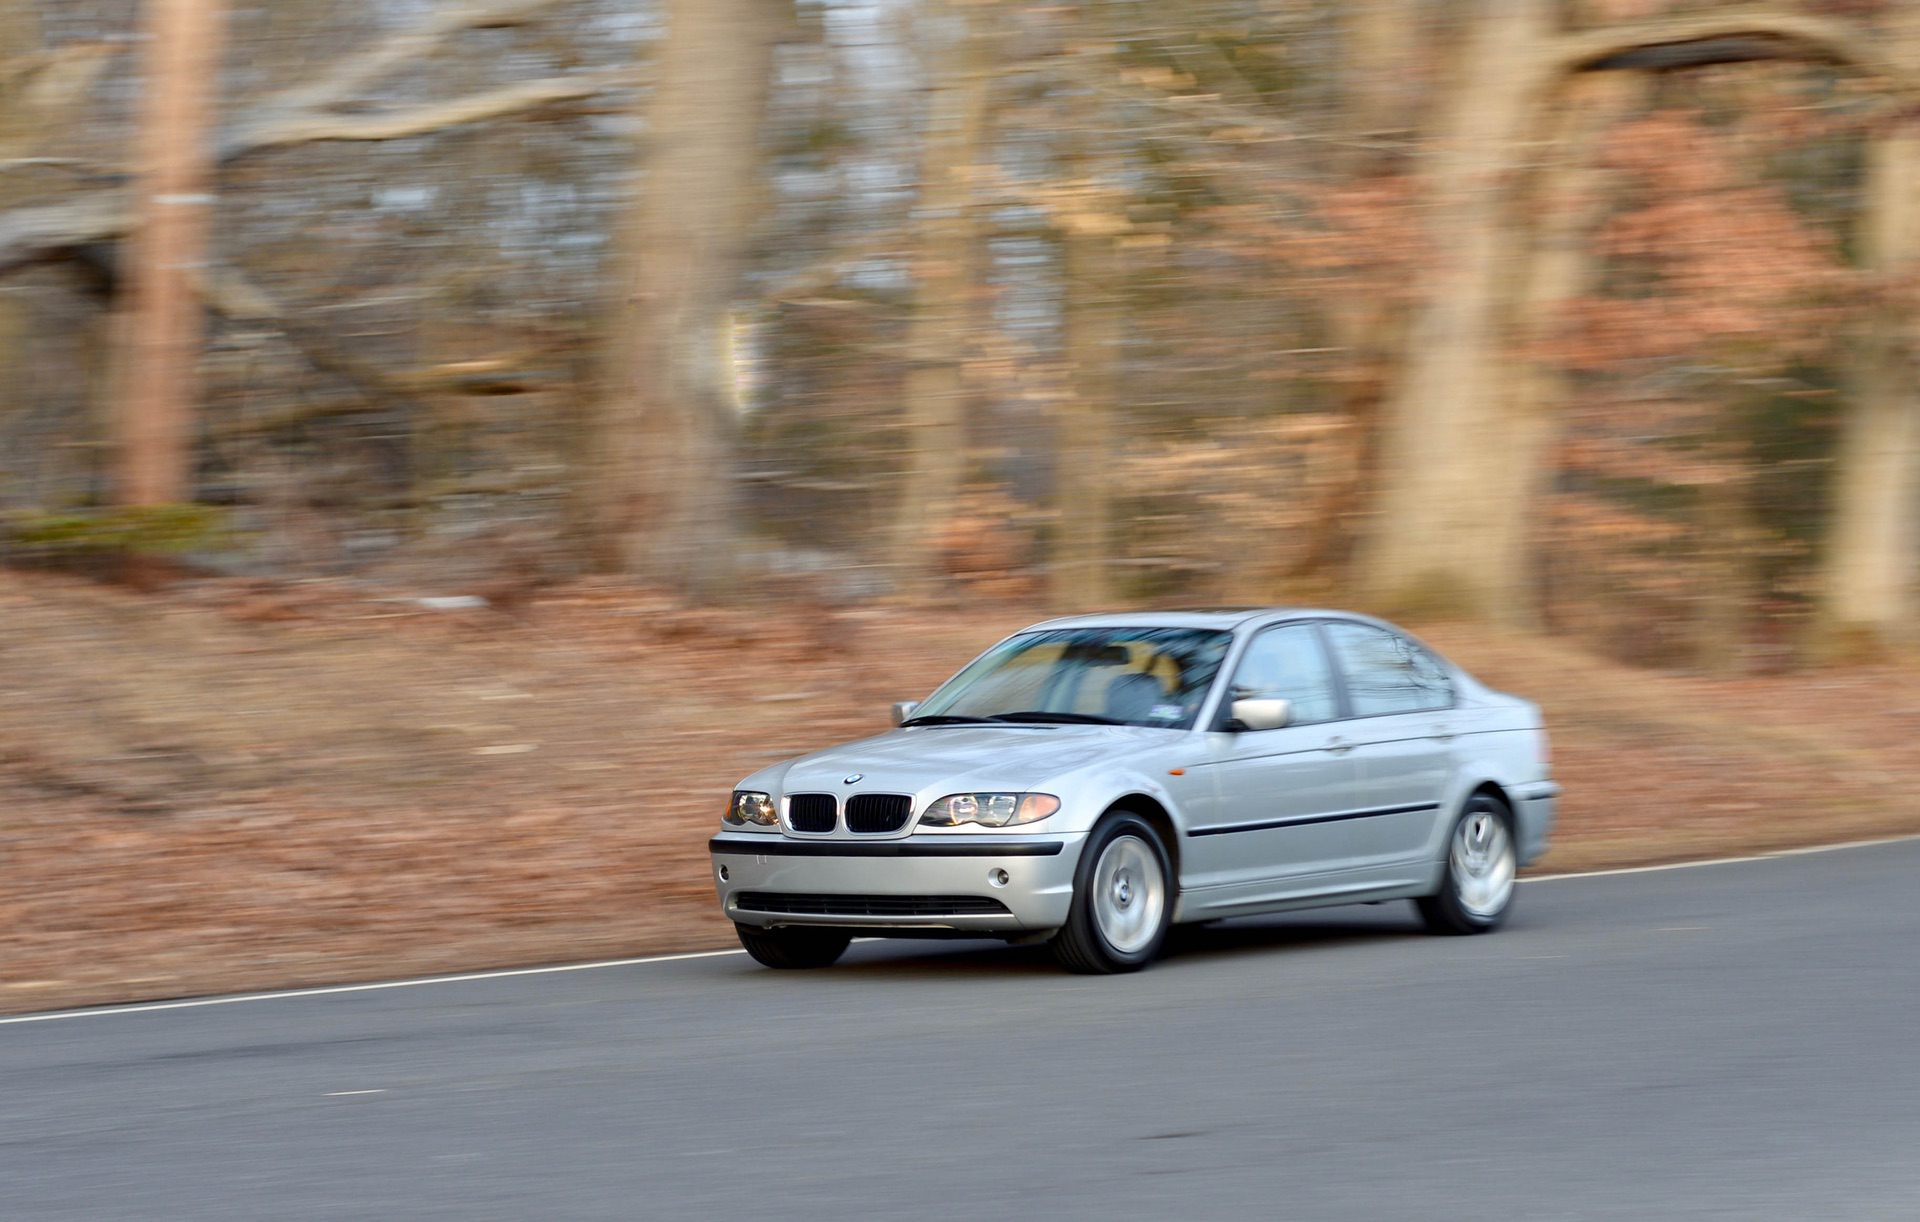 What Are The Different Packages For The Bmw E46 3 Series